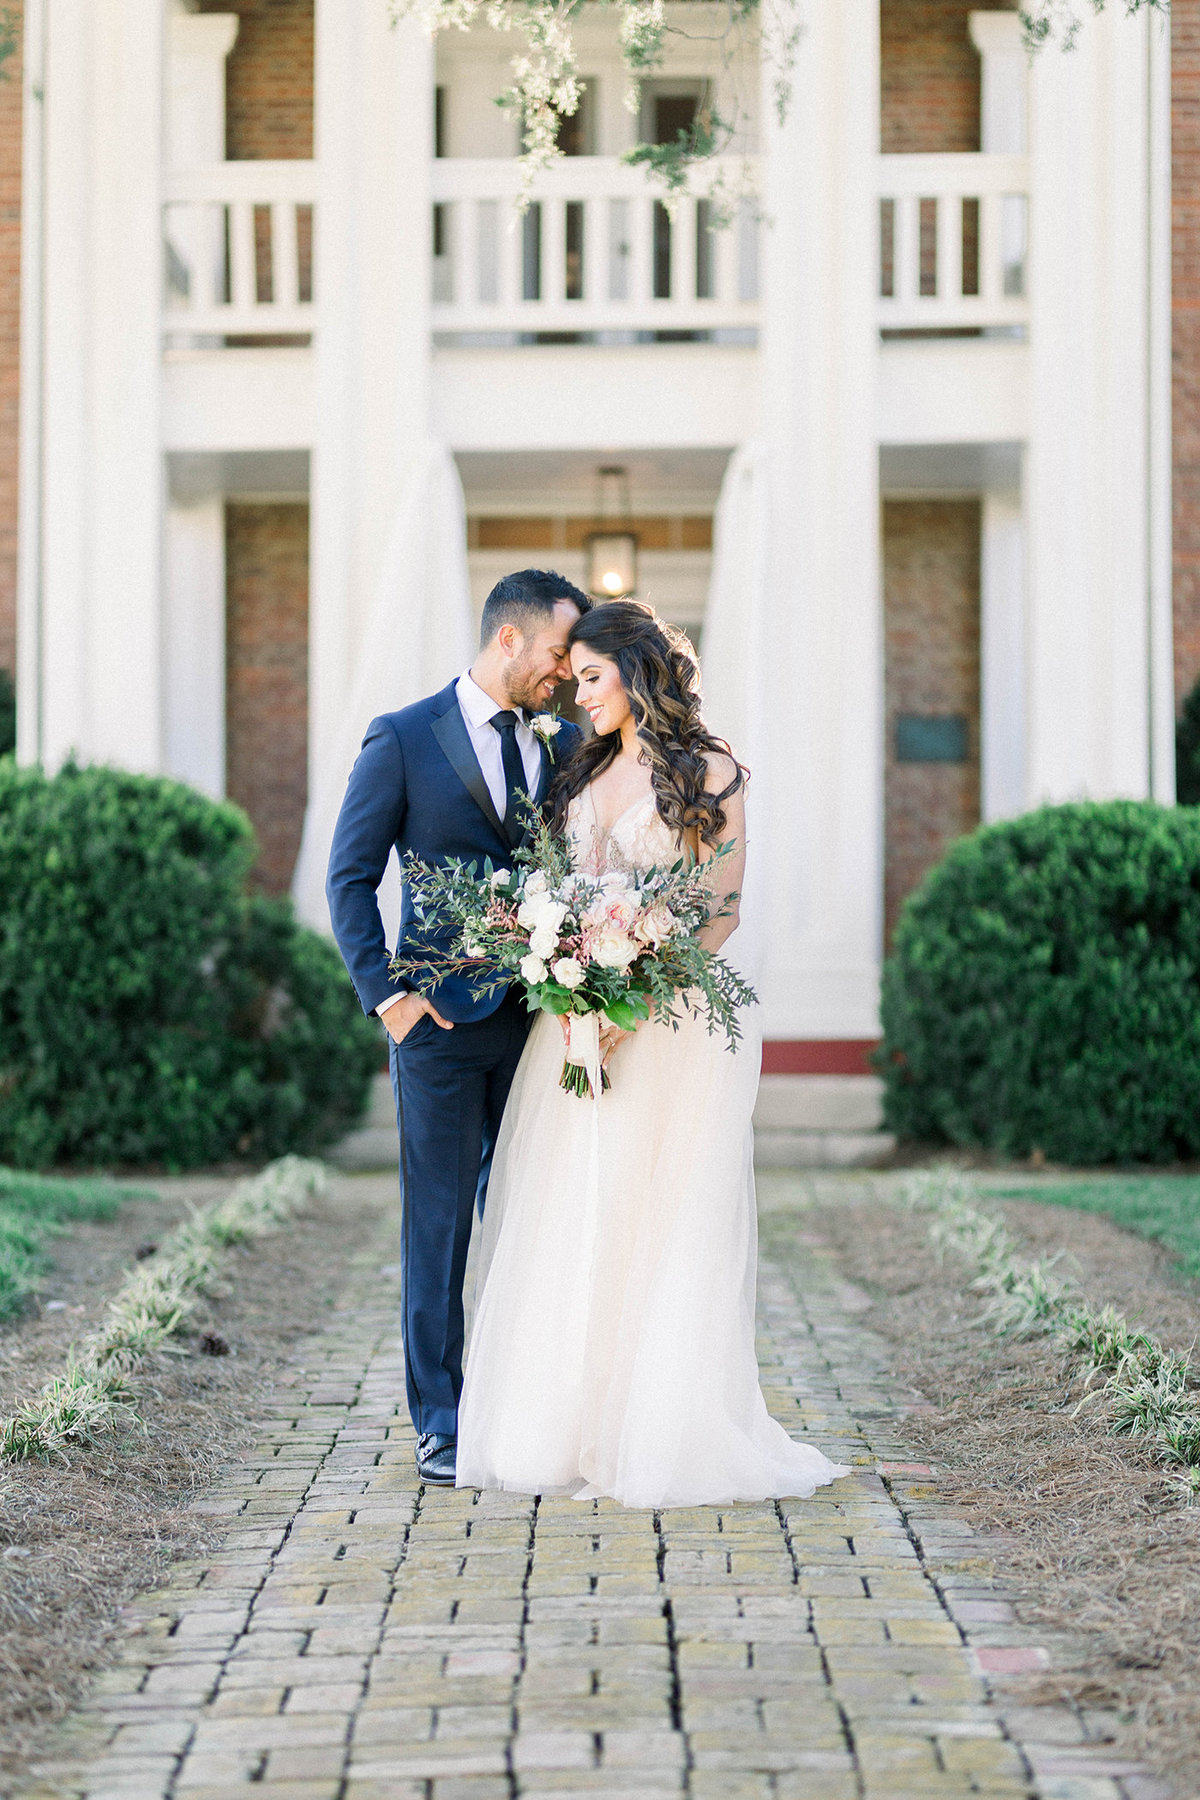 Cedarmont Nashville Editorial - Sarah Sunstrom Photography - Fine Art Wedding Photographer - 20